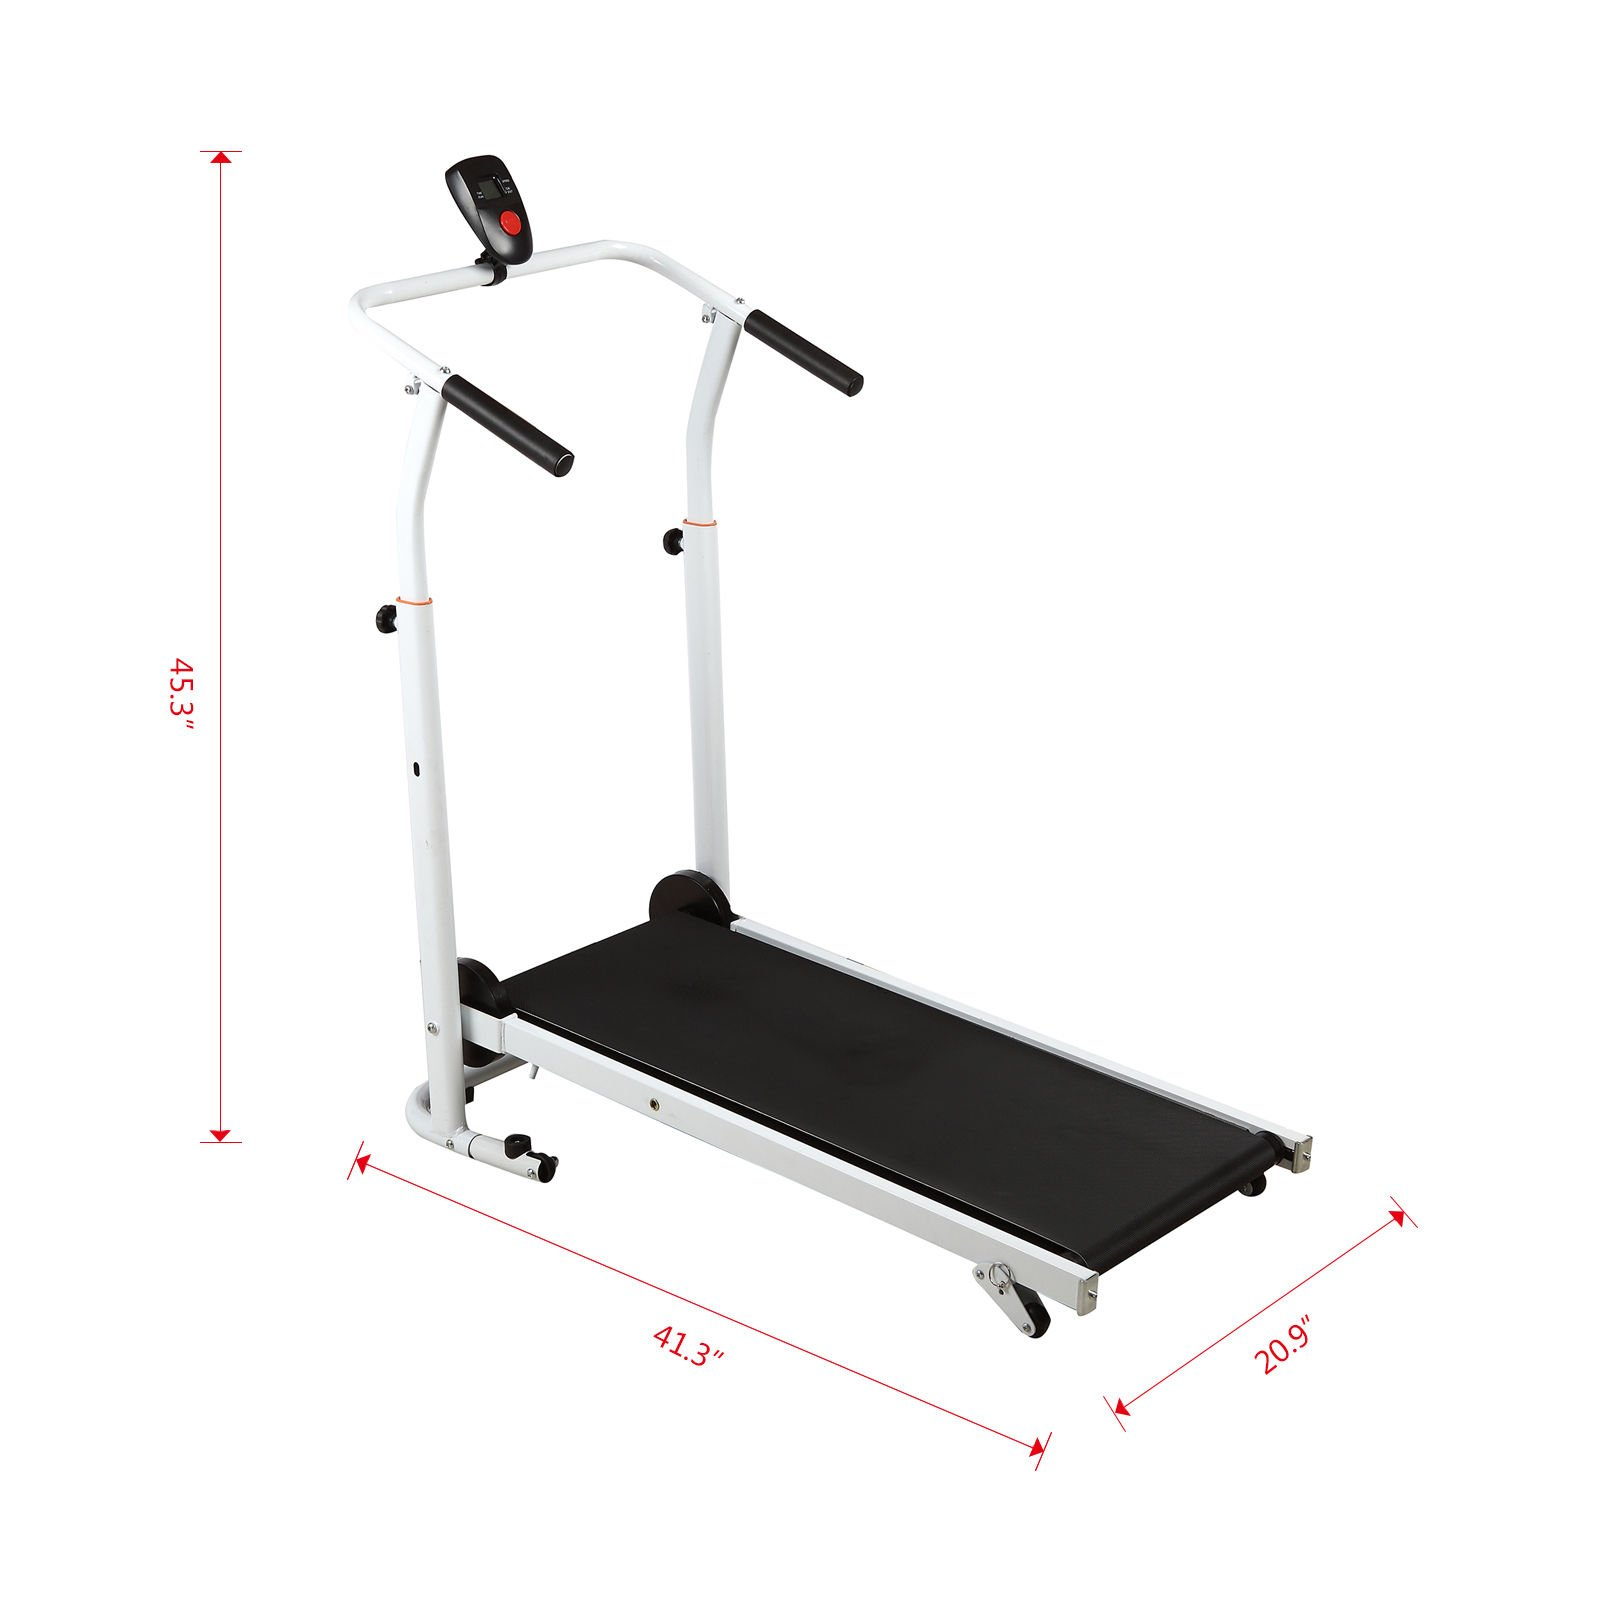 Artist Hand Folding Manual Treadmill Incline Home Gym Maching Cardio Stride Fitness Walking Workouts with Twin Flywheels No Monitor Required by Artist Hand (Image #6)